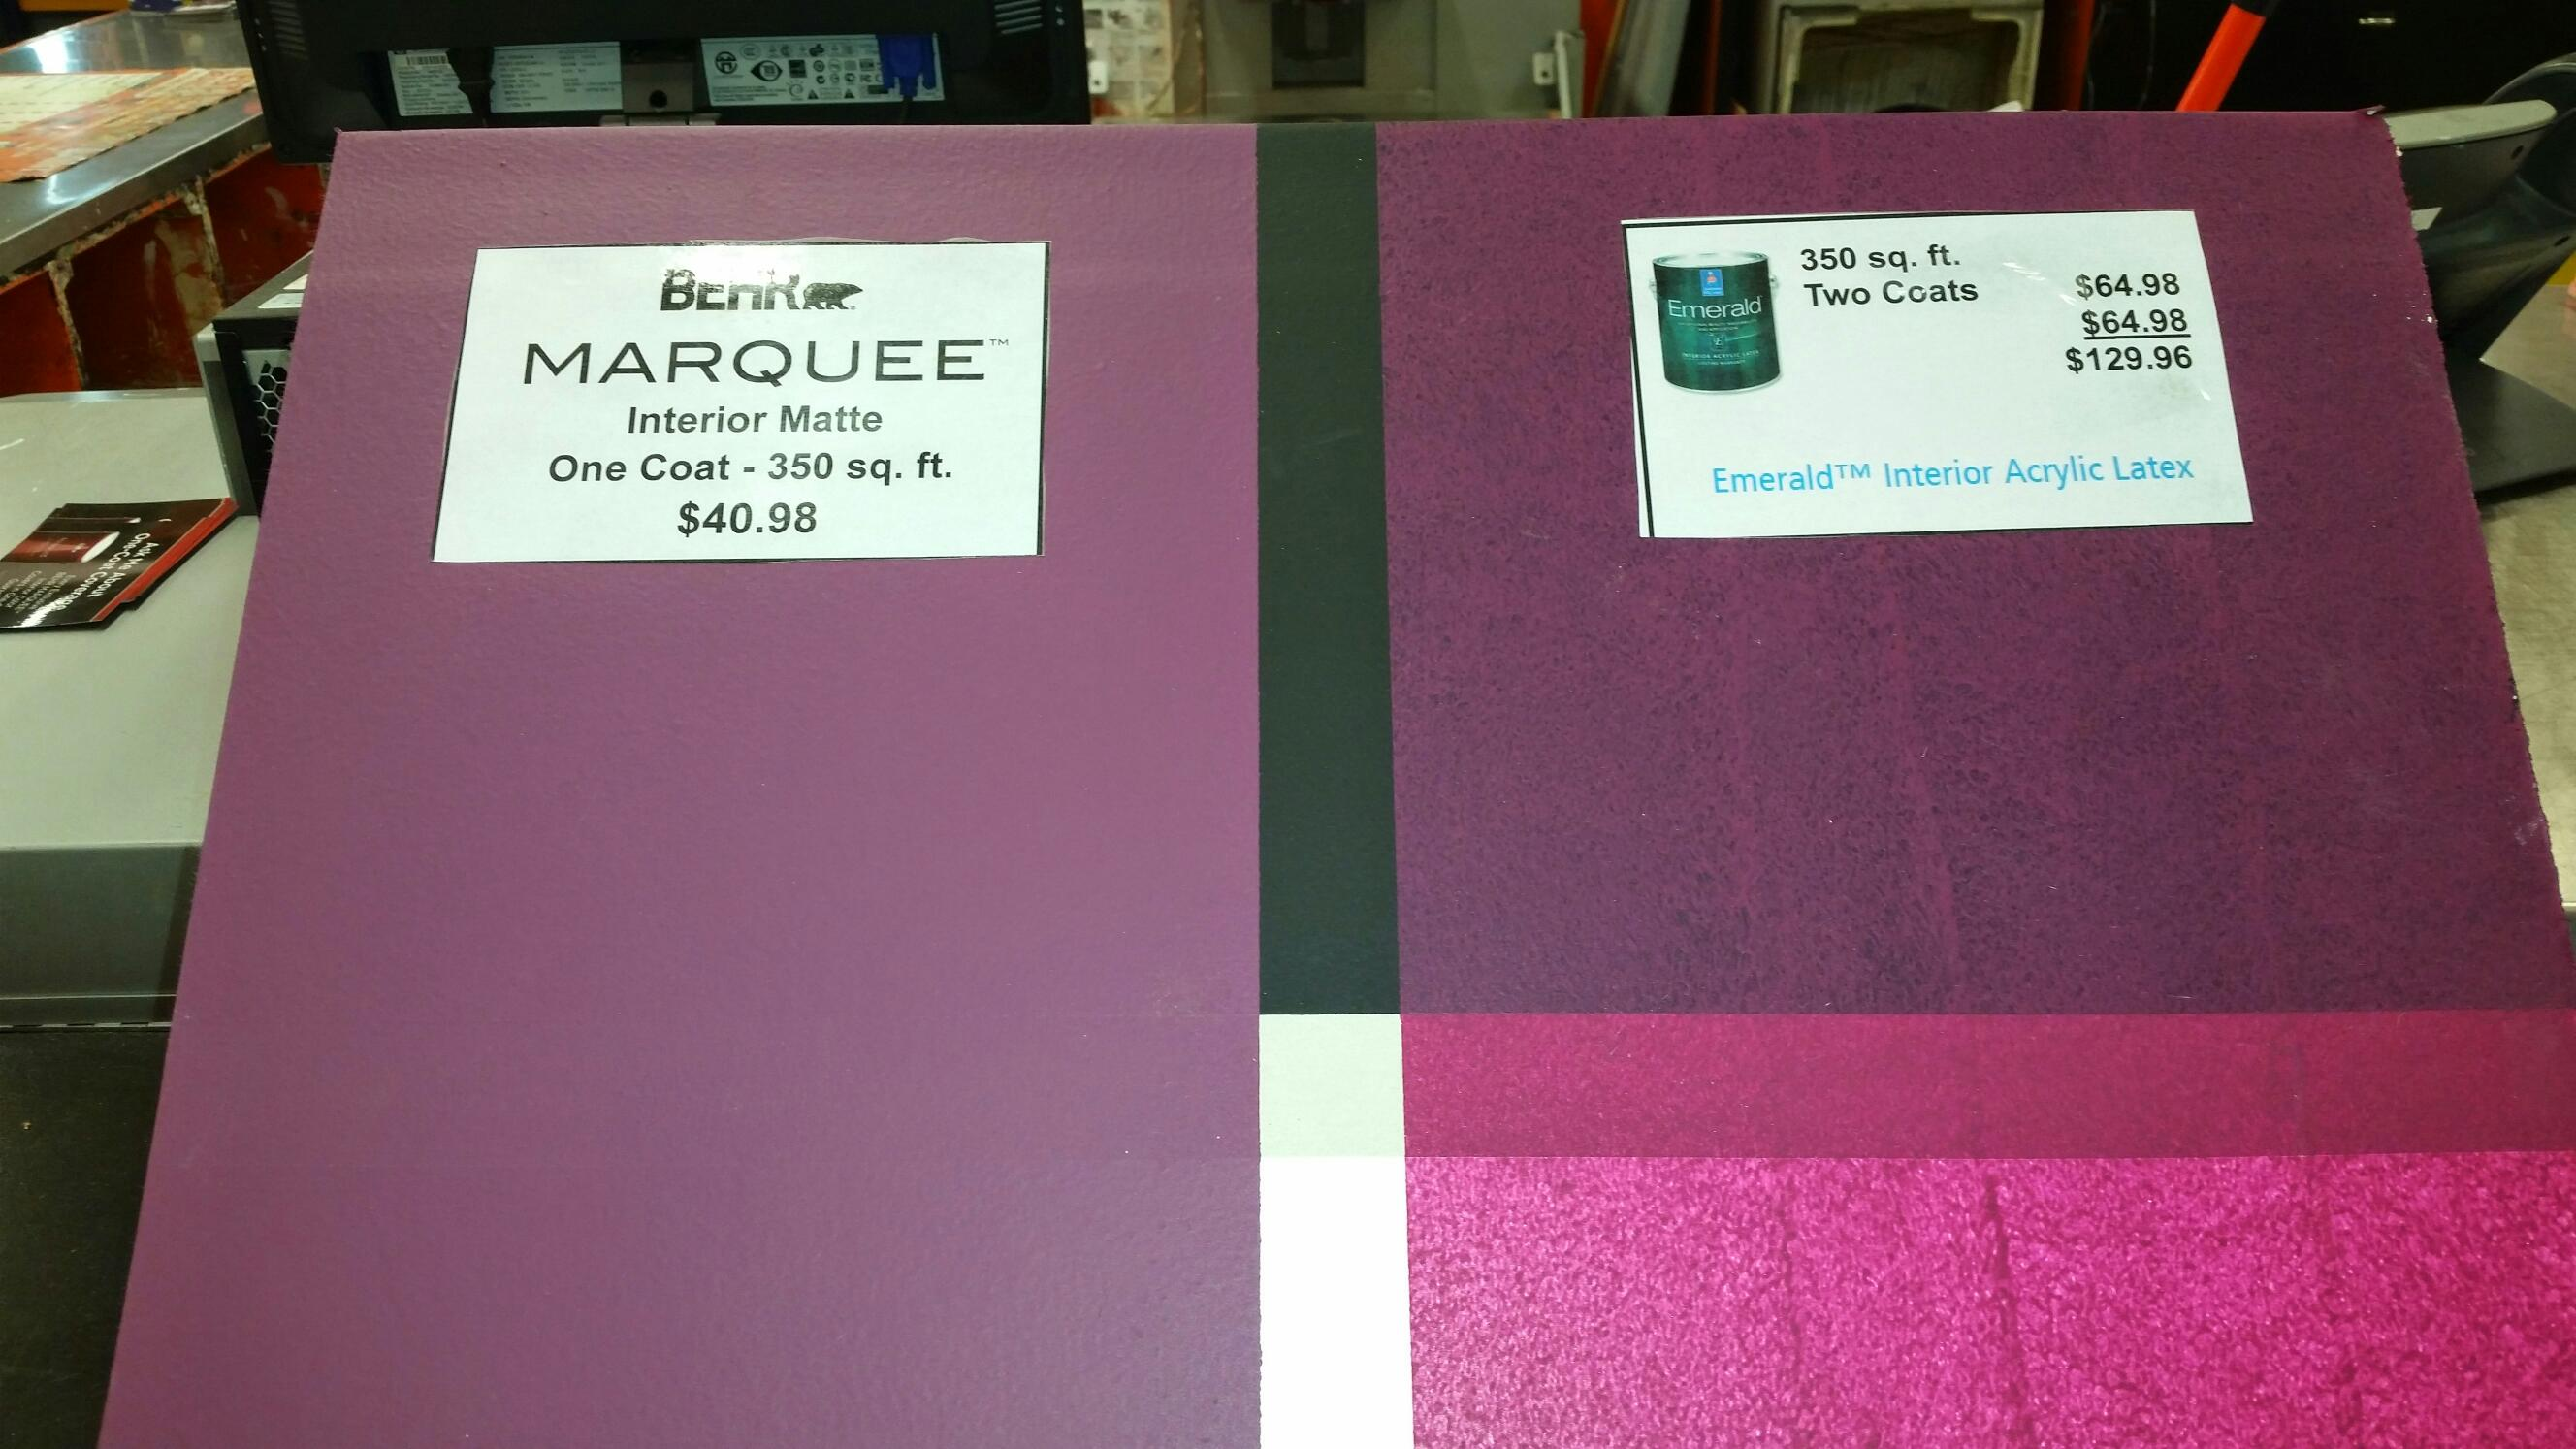 Testing behr marquee vs sherwin williams emerald - Behr vs sherwin williams interior paint ...